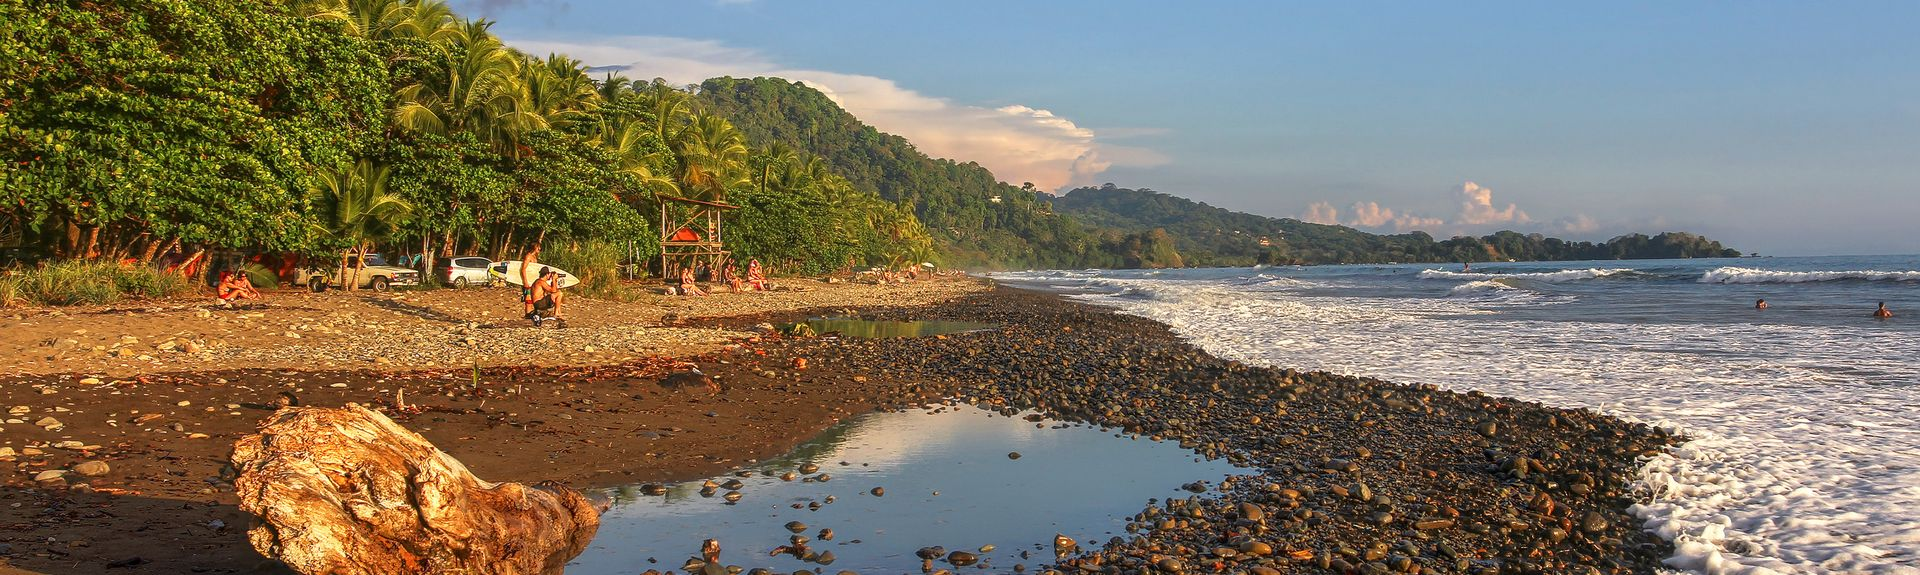 Dominical, Puntarenas (provincia), Costa Rica